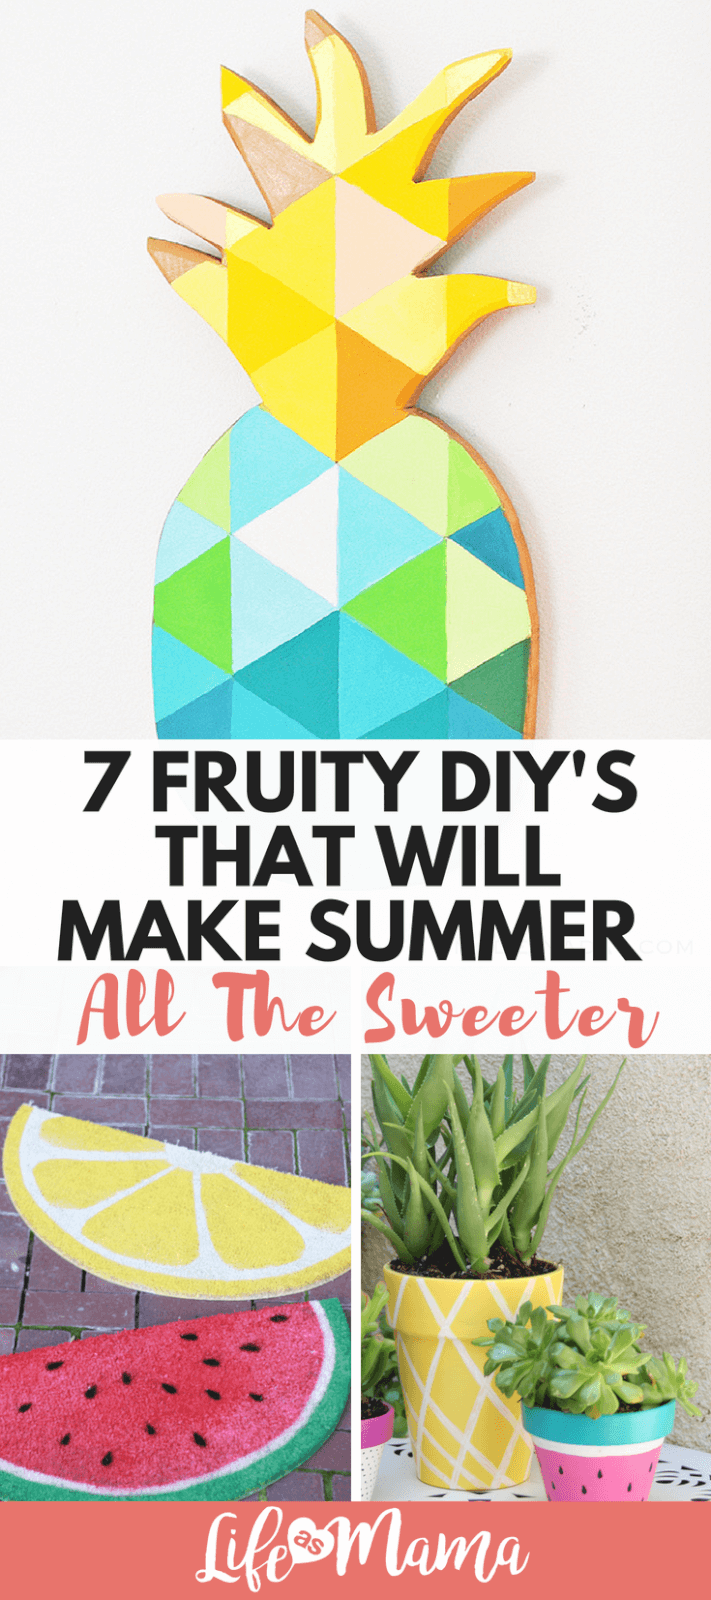 7 Fruity DIY's That Will Make Summer All The Sweeter